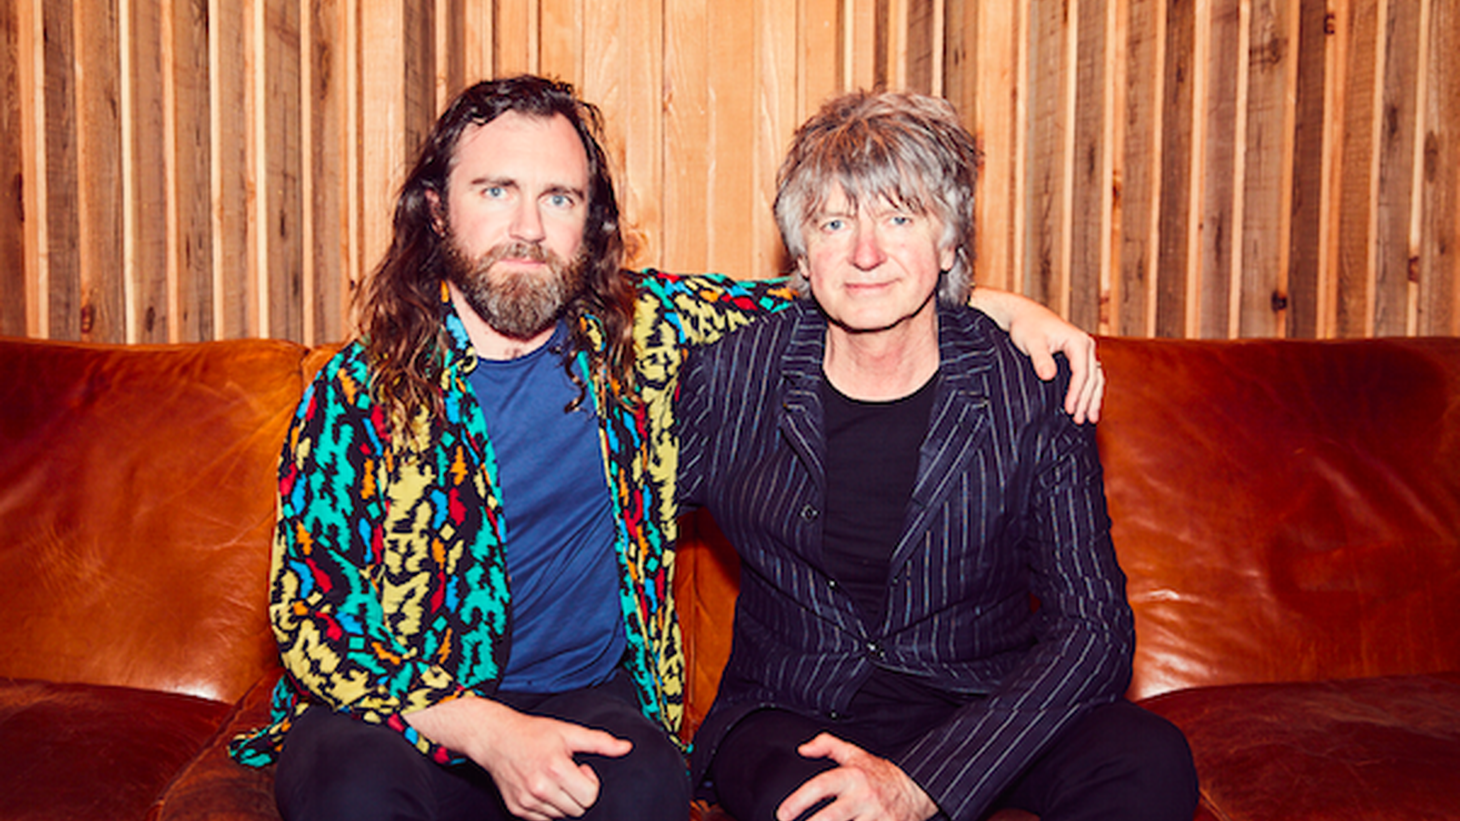 They've been playing music together for many, many years, but father/son duo Neil and Liam Finn waited until the time was right to record a proper album together.